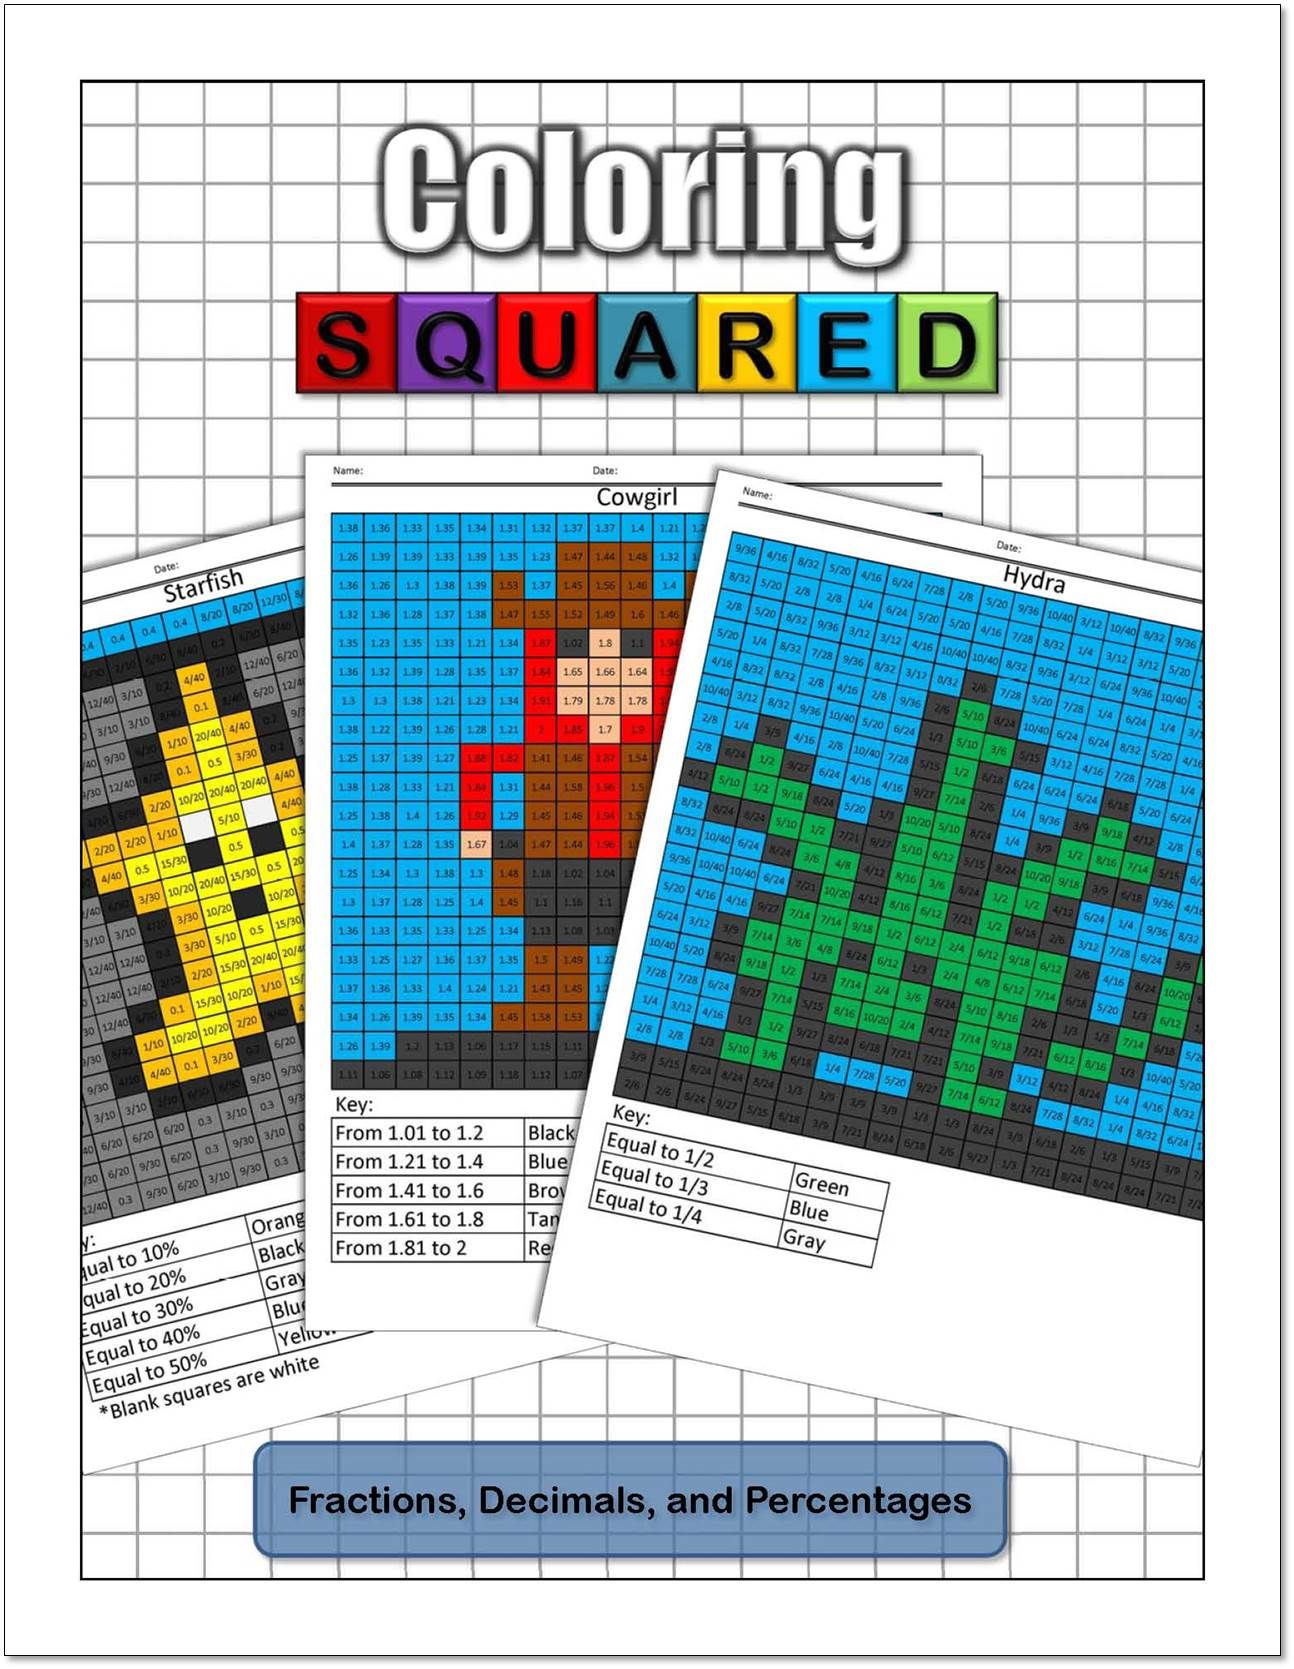 Coloring Squared: Fractions, Decimals, and Percentages $9.95 ...